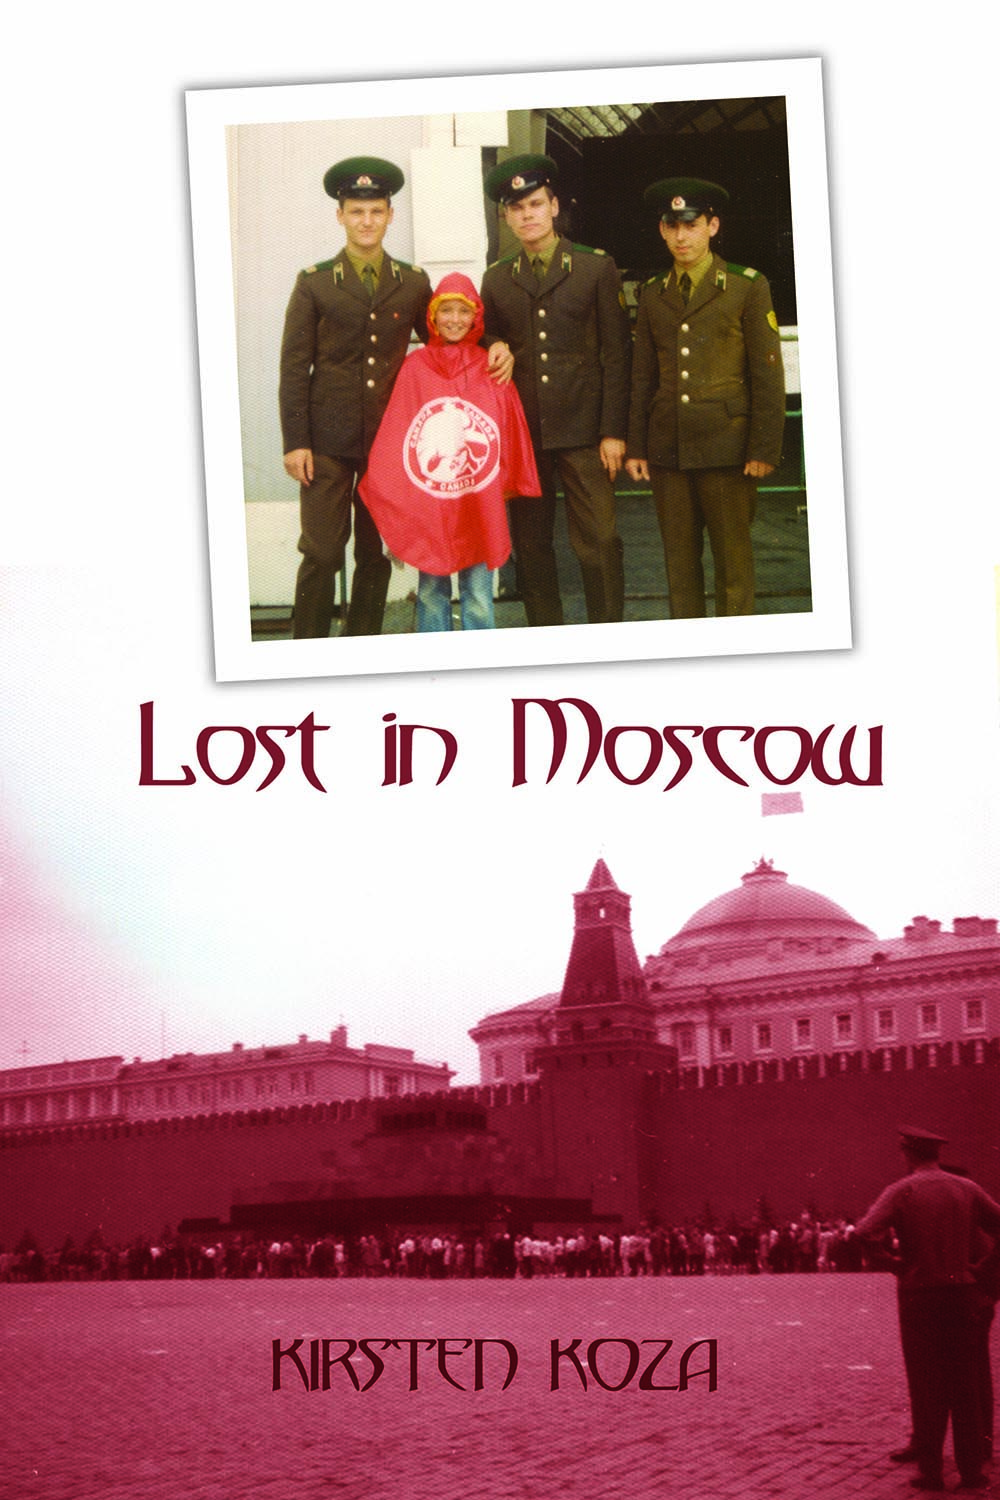 Lost in Moscow by Kirsten Koza